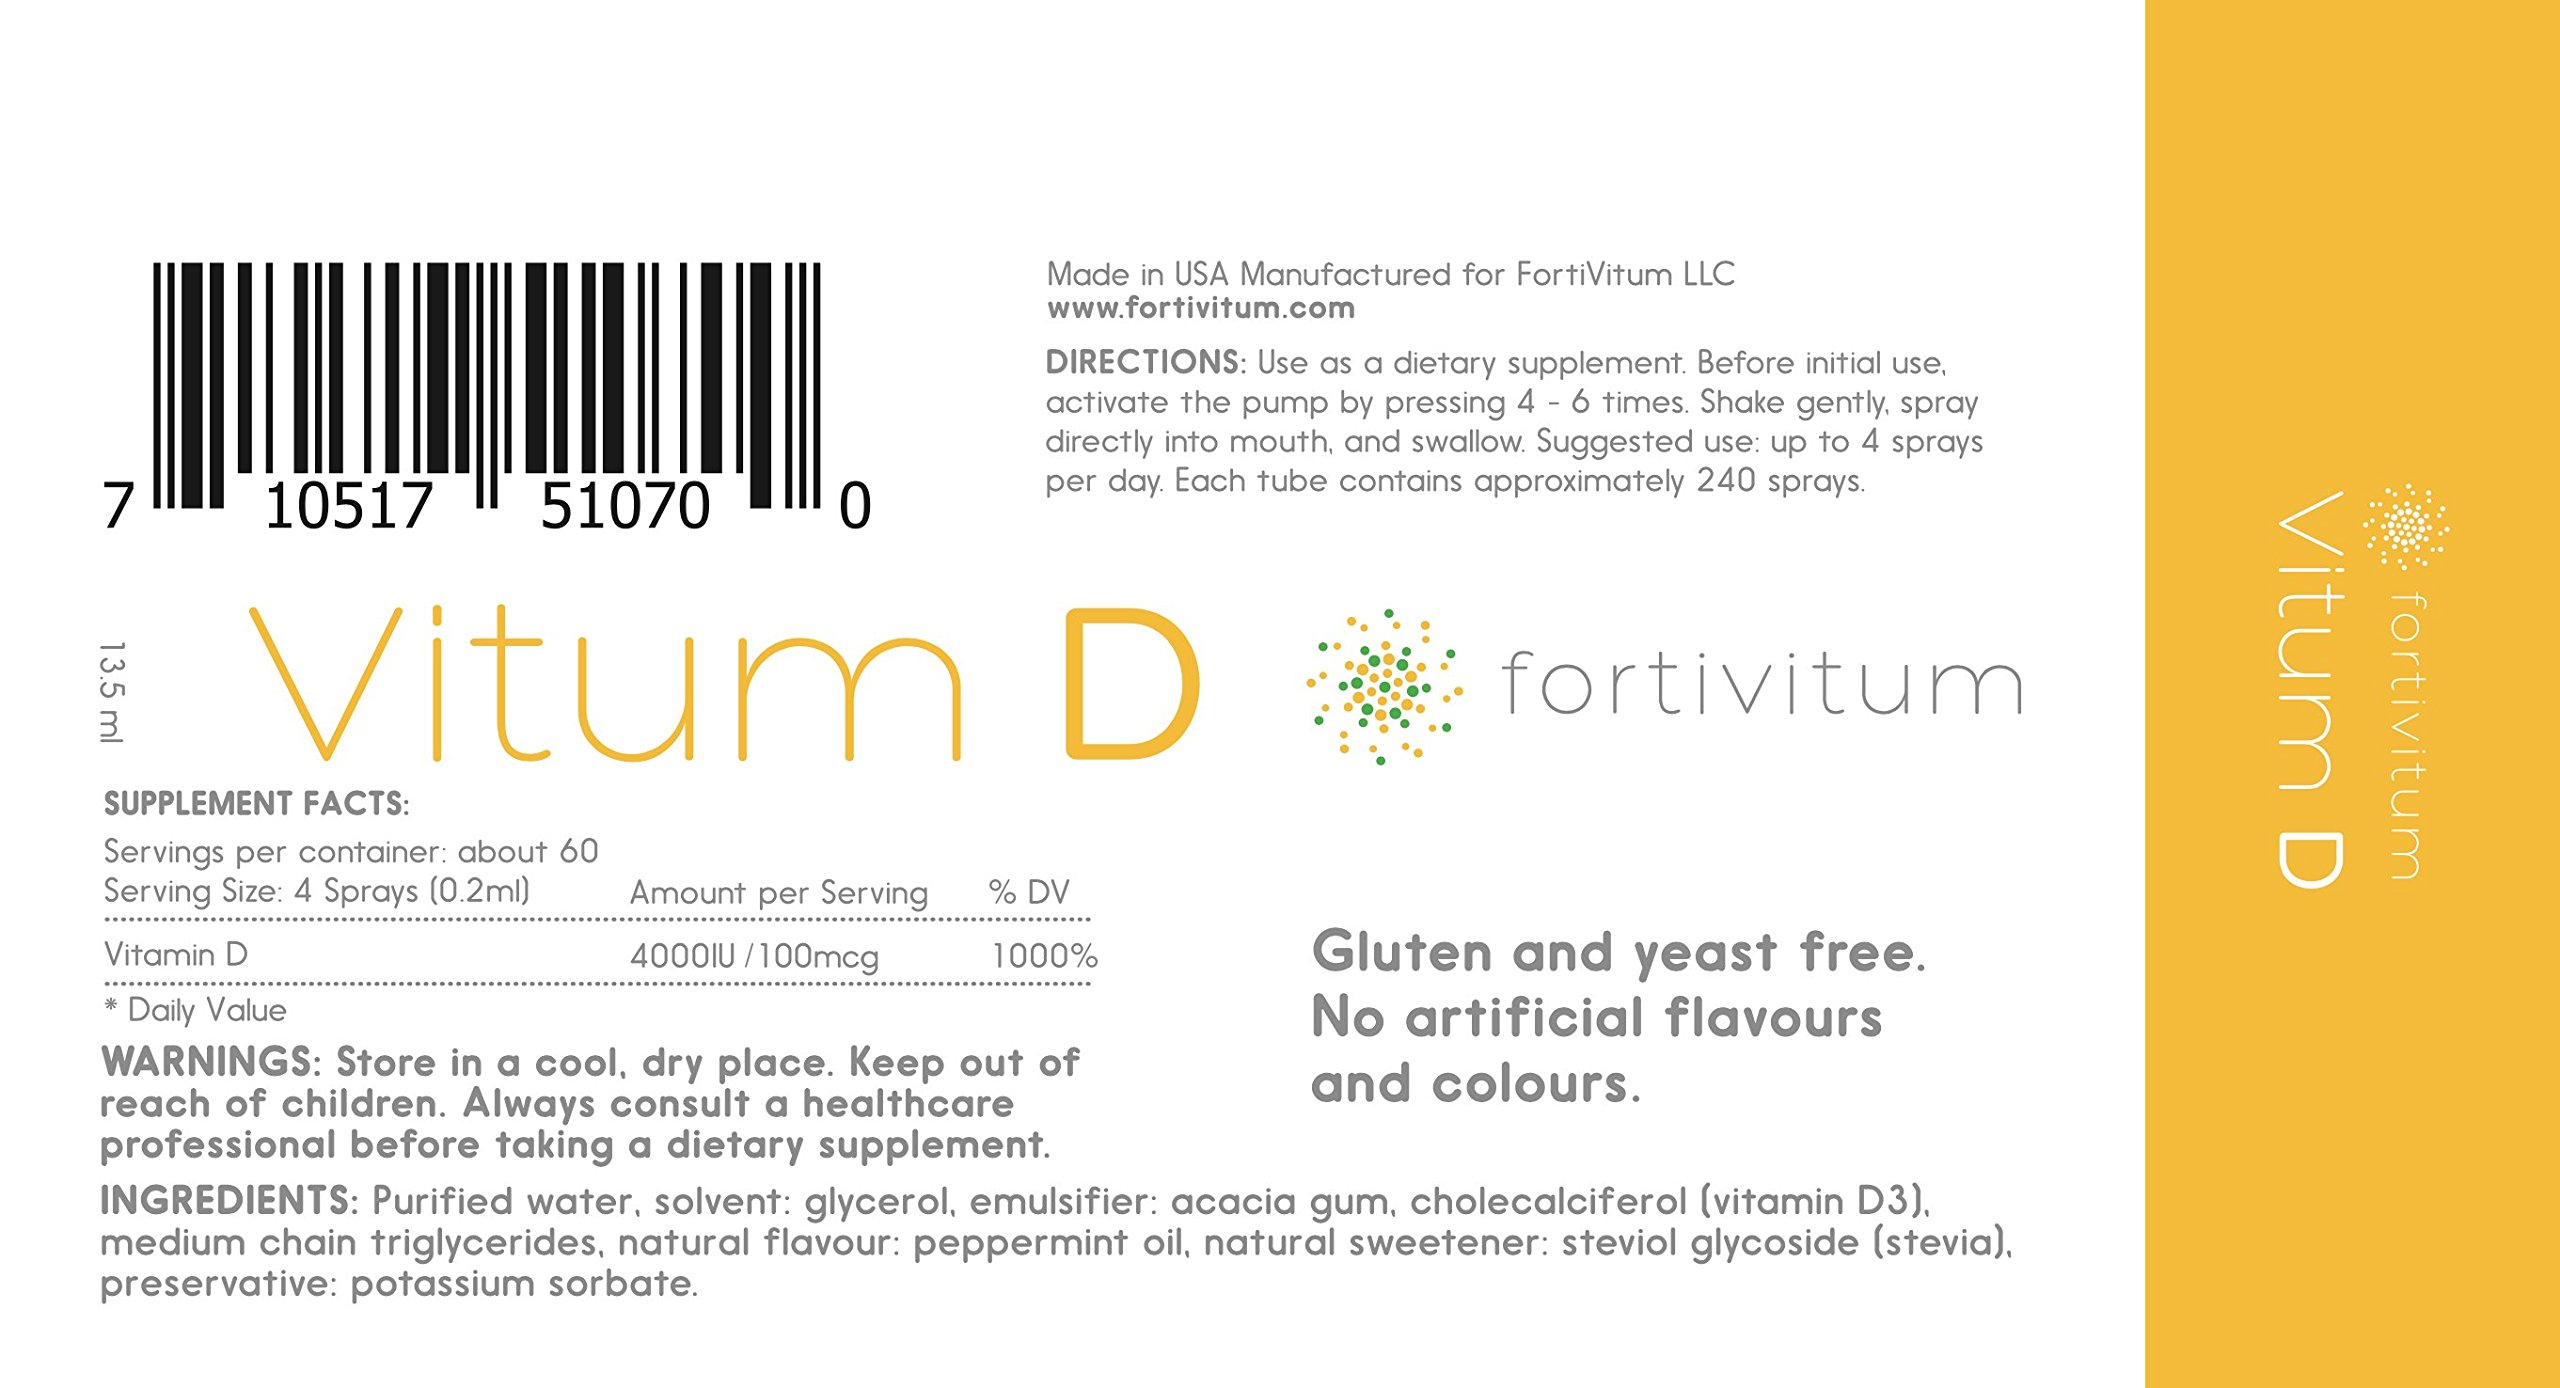 Vitamin D3 4000 IU Liquid Spray (Cholecalciferol), Naturally High Absorption Rate | Strong Bone Health and Immune System Boost by FortiVitum (Image #1)